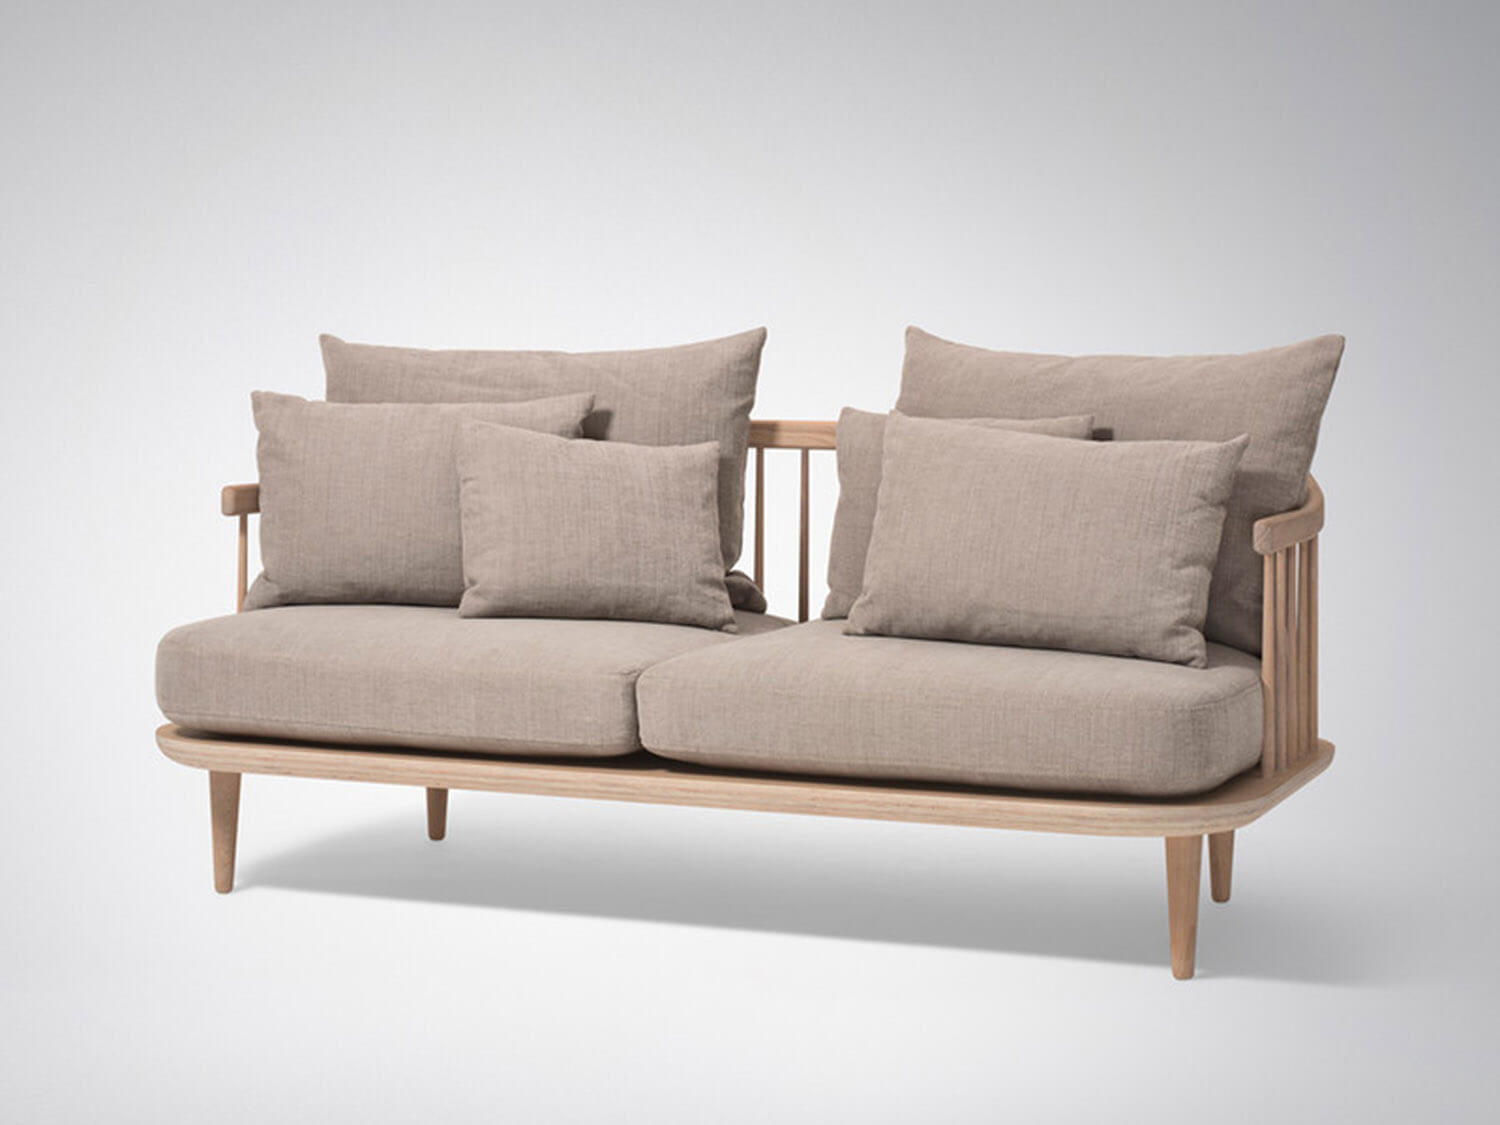 Est Living andTradition FLY Sofa SC2 in white oak 2